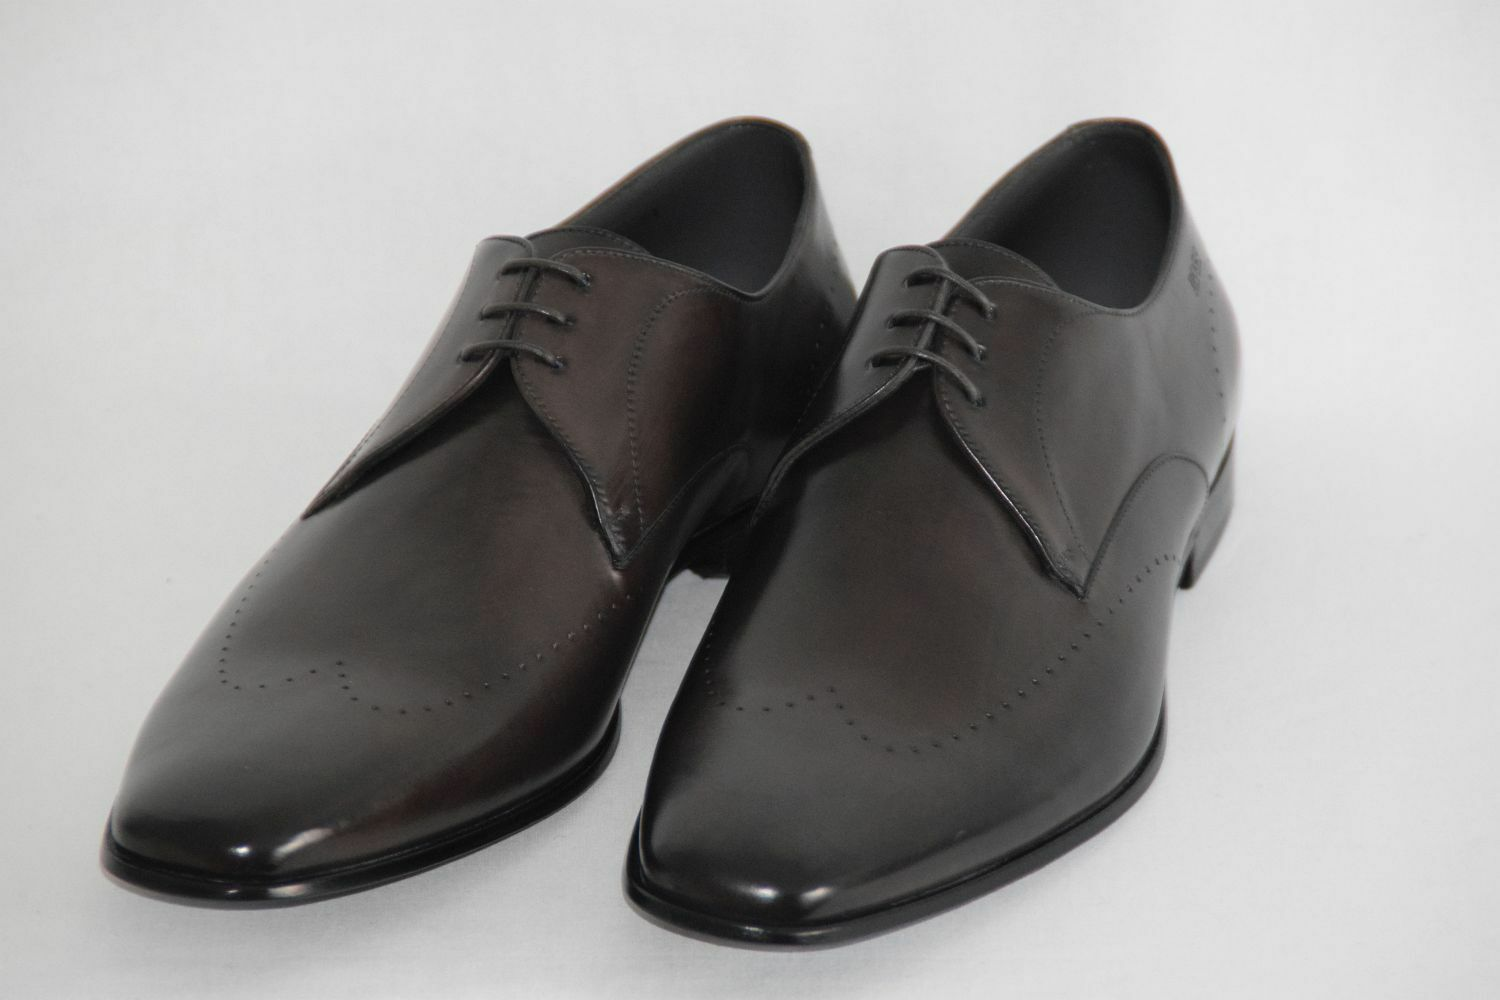 HUGO BOSS Business Chaussures, Taille 43,5 UK 9.5 US 10.5 Made in , Dark marron